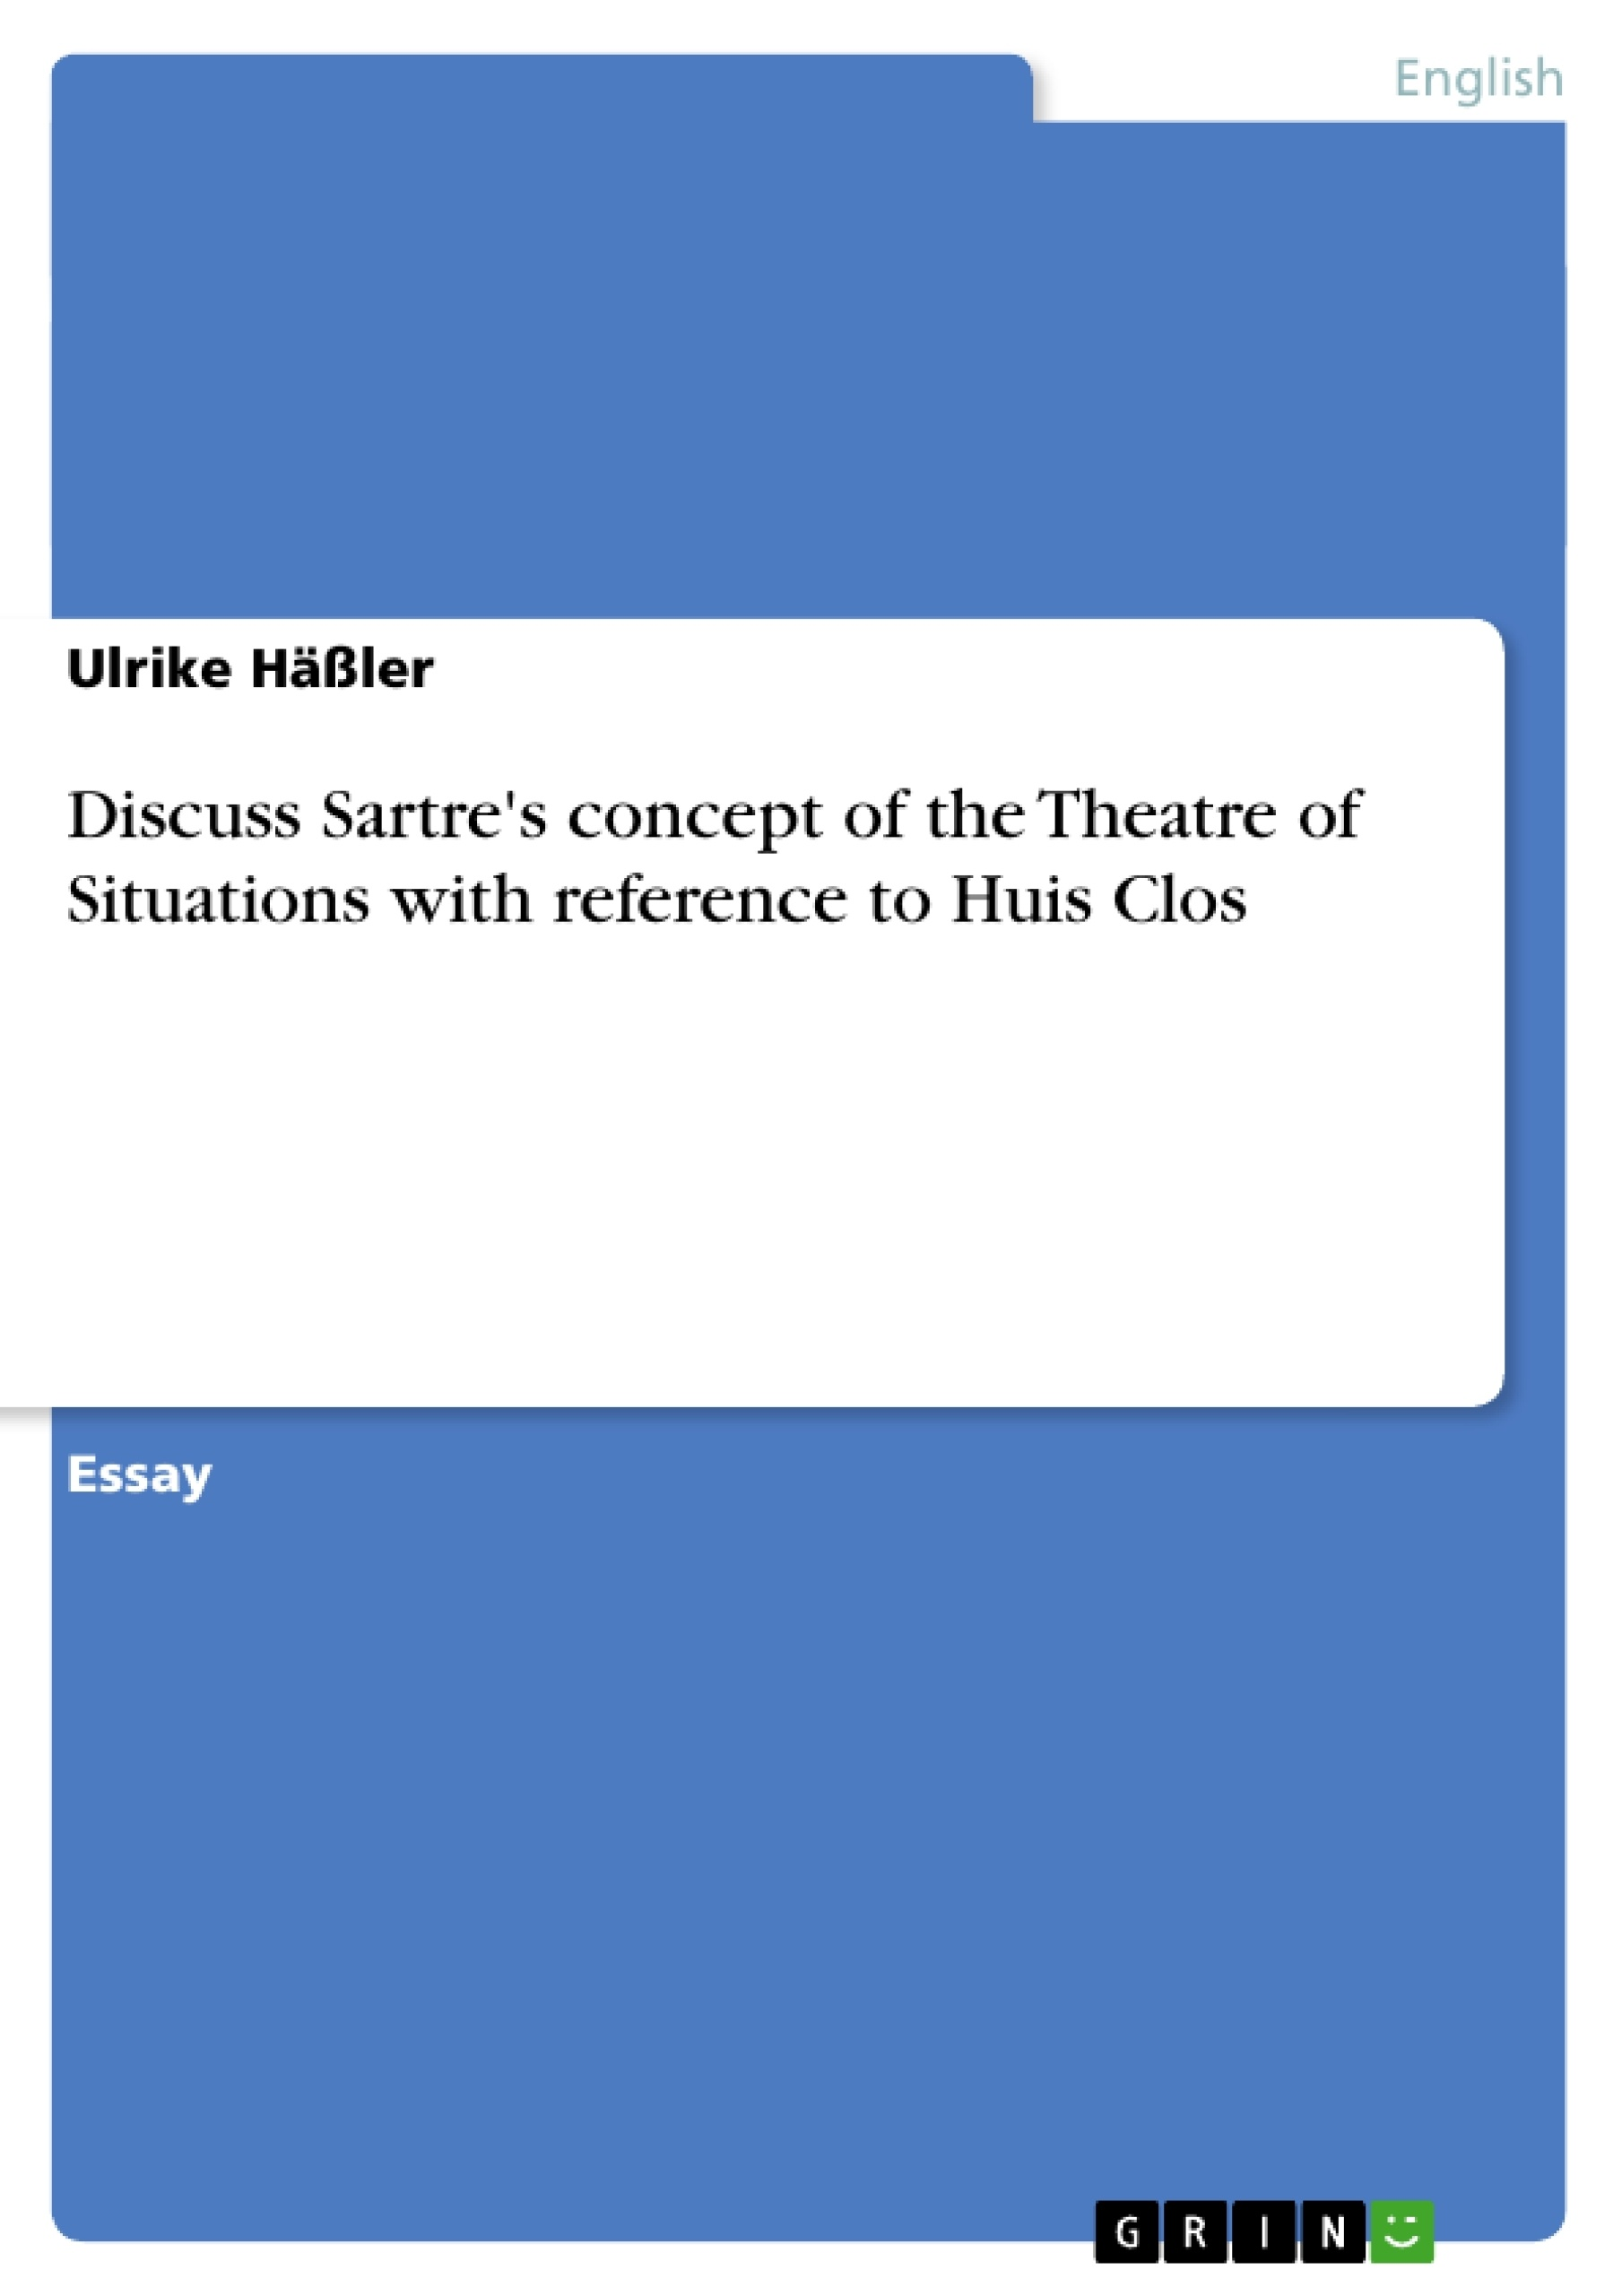 Title: Discuss Sartre's concept of the Theatre of Situations with reference to Huis Clos